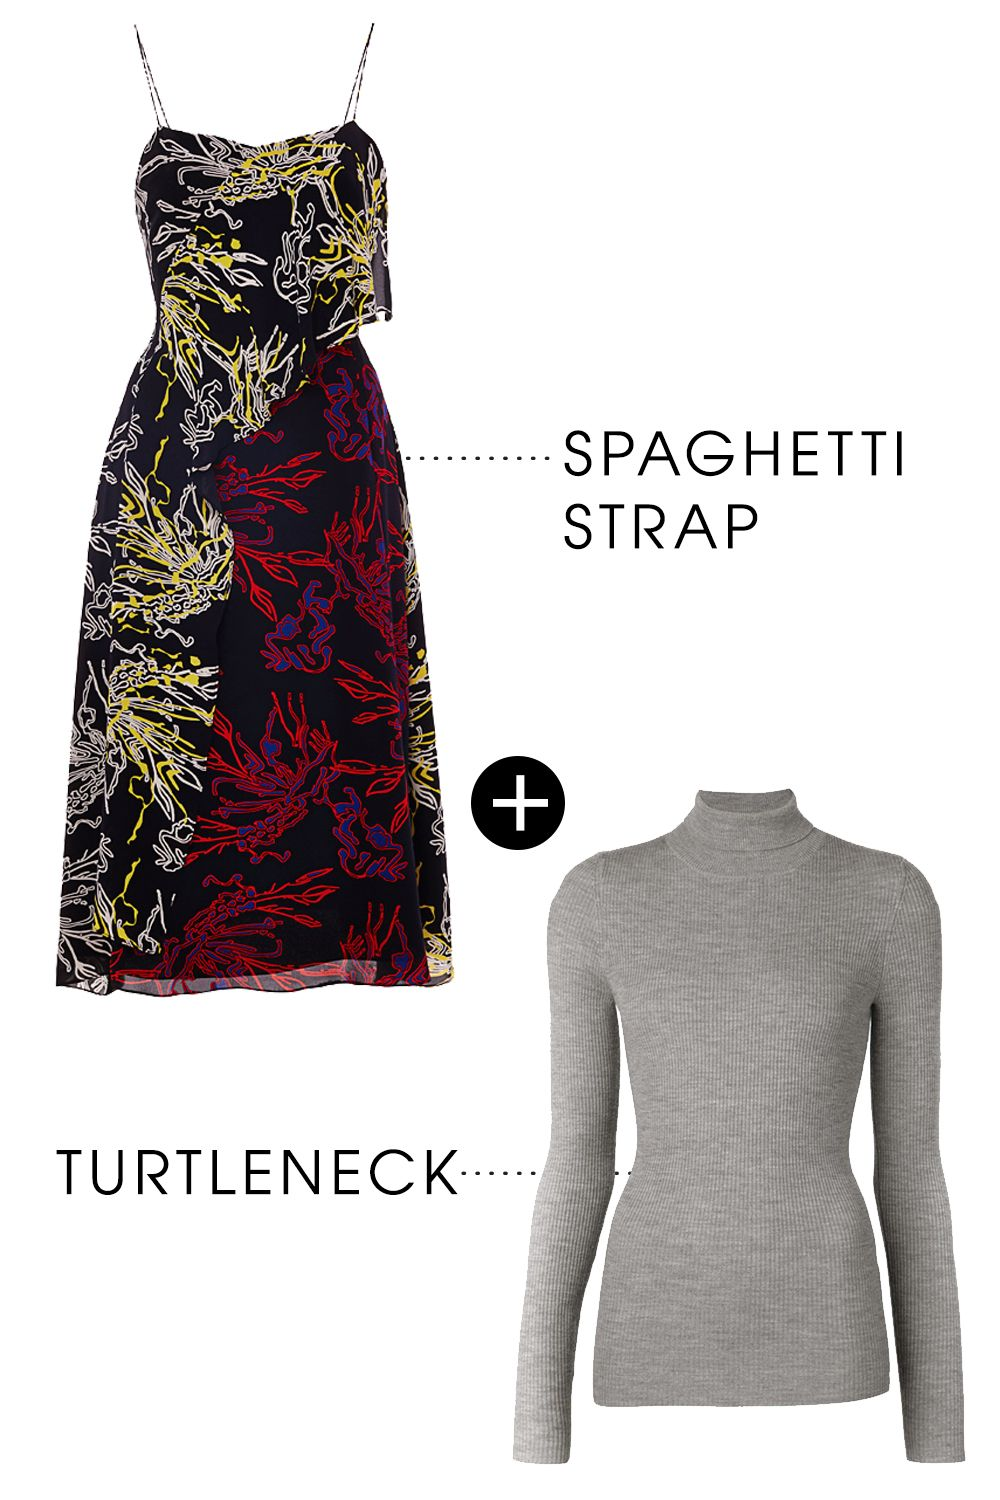 """<p>You can never have too many turtlenecks in your closet. On their own, they're great basics. Worn under a spaghetti strap dress (even the most colorful!) and they become the perfect solution to all your transitional dressing woes. </p><p>Tanya Taylor Bella Dress, $650; <a href=""""https://tanyataylor.com/shop/reef-print-asymmetrical-paneled-silk-dress?taxon_id=26"""">tanyataylor.com</a></p><p>Barbara Bui Ribbed Turtleneck Sweater, $395; <a href=""""http://rstyle.me/n/bd3a35bc6jf"""">farfetch.com</a></p>"""